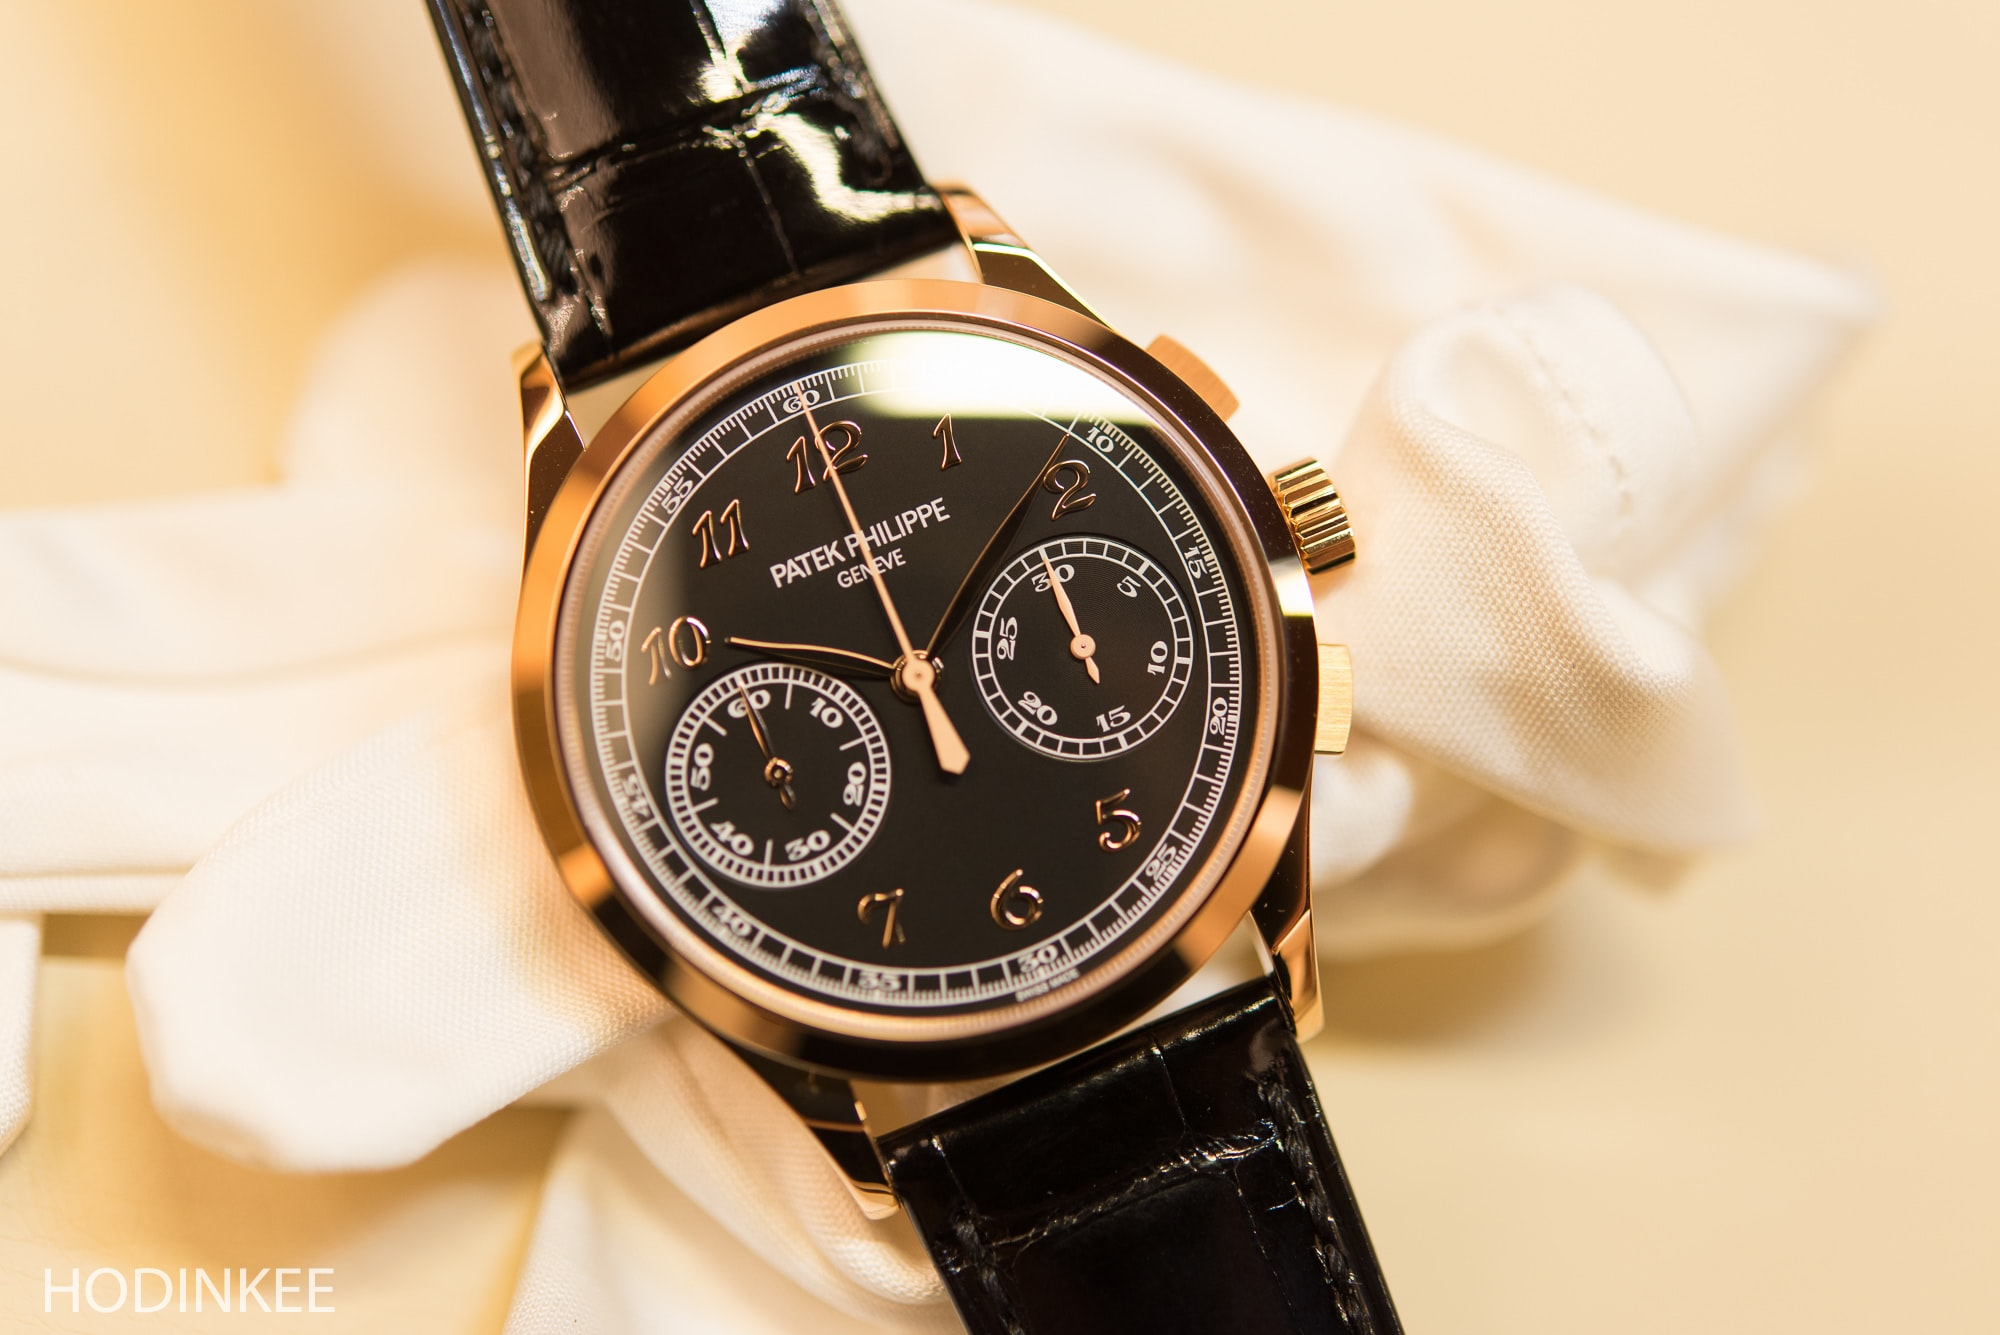 Patek 5170R-010 Introducing: The Patek Philippe 5170R – The Classic Manually Wound Patek Goes Rose Gold Introducing: The Patek Philippe 5170R – The Classic Manually Wound Patek Goes Rose Gold PatekPhilippe 5170R 5